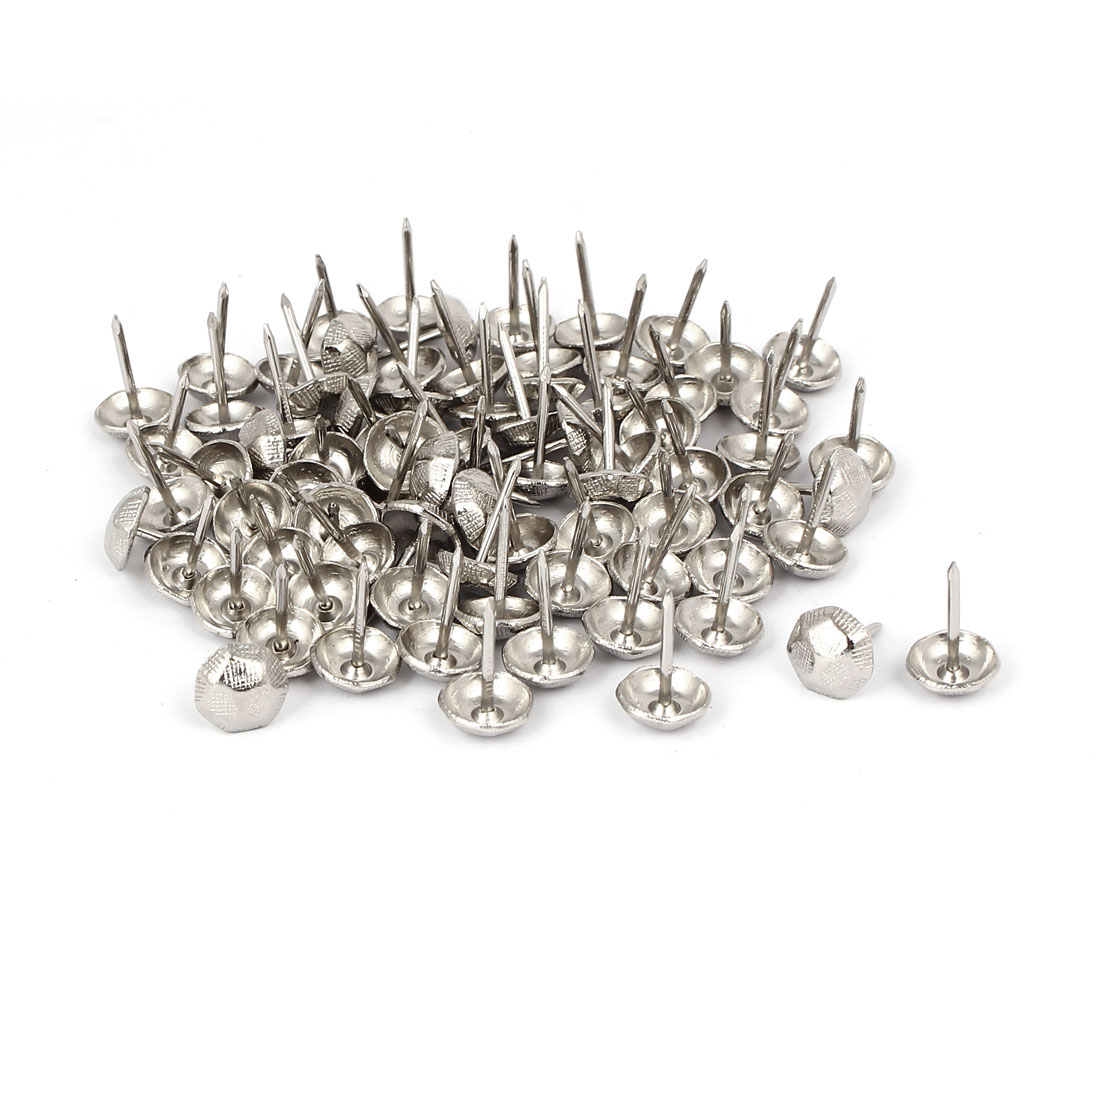 "7/16"" Dia Stainless Steel Drawing Pin Upholstery Nail Thumb Tack Pushpin 80PCS"